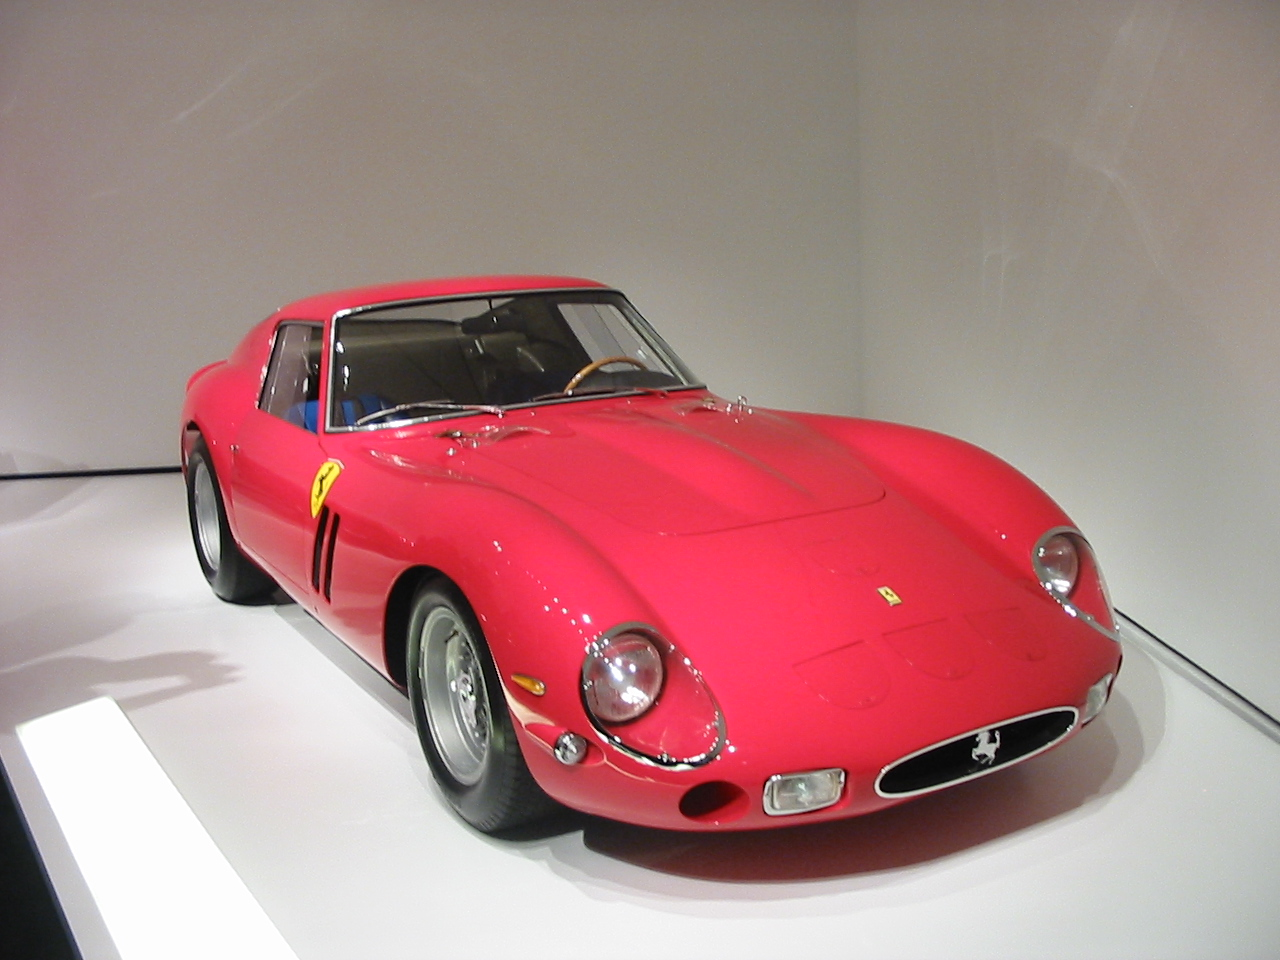 Ferrari 250GTO. First raced by the Rodriguez brothers at Montlhery in 1962 under N.A.R.T. ownership (first overall). Then it was owned by the Mecom Racing Team from Texas and driven by Roger Penske and Augie Pabst to numerous first place finishes around the US. From 1972 on it has been a frequent Concours entrant under several owners including the current one, Ralph Lauren.